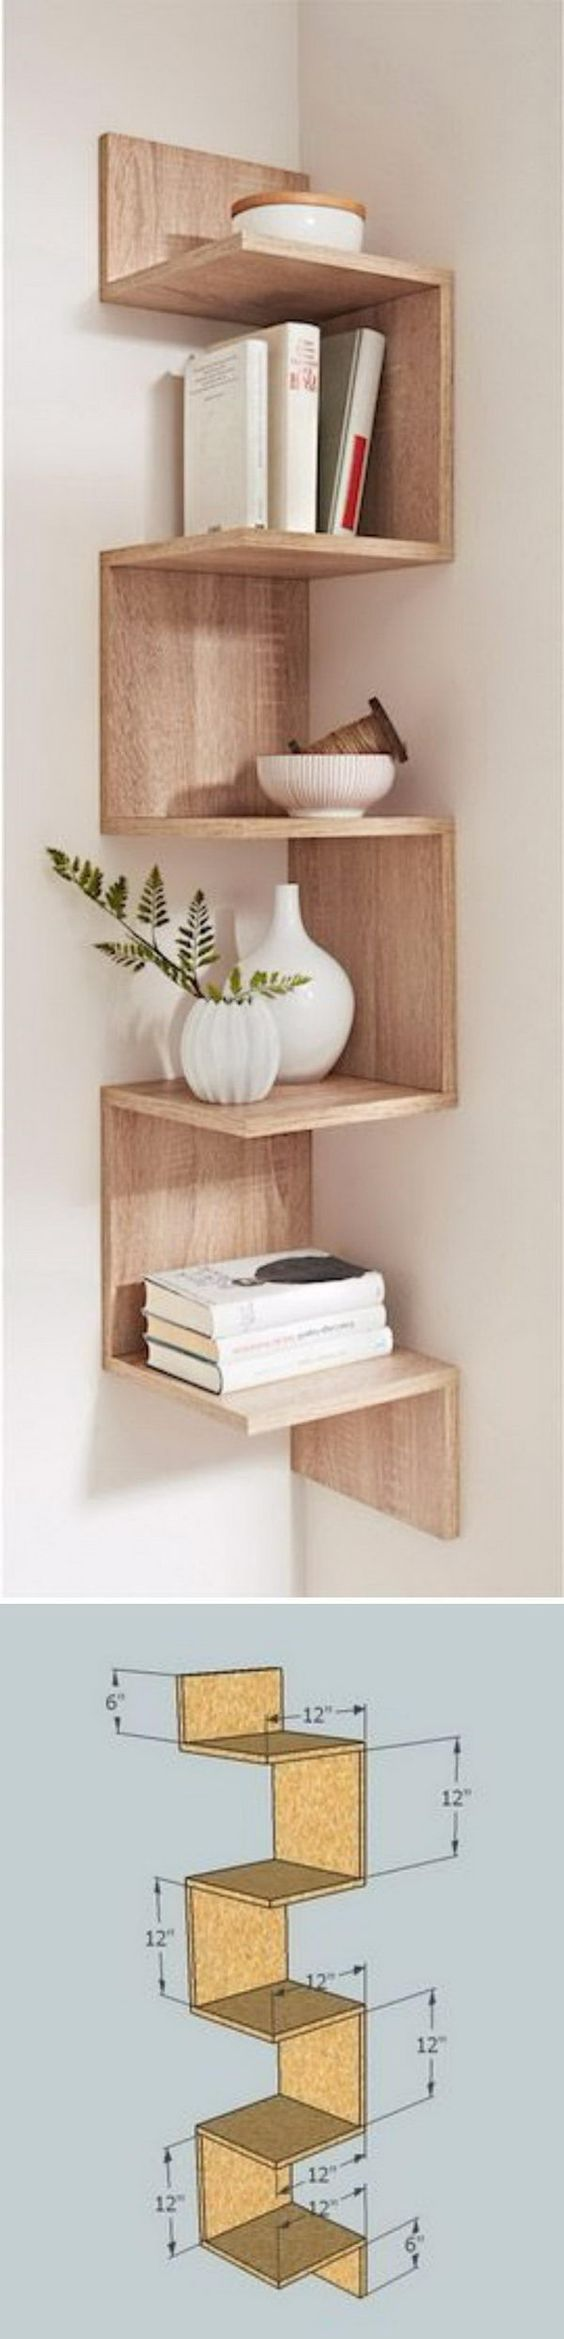 best 25 diy shelving ideas on pinterest wall shelves